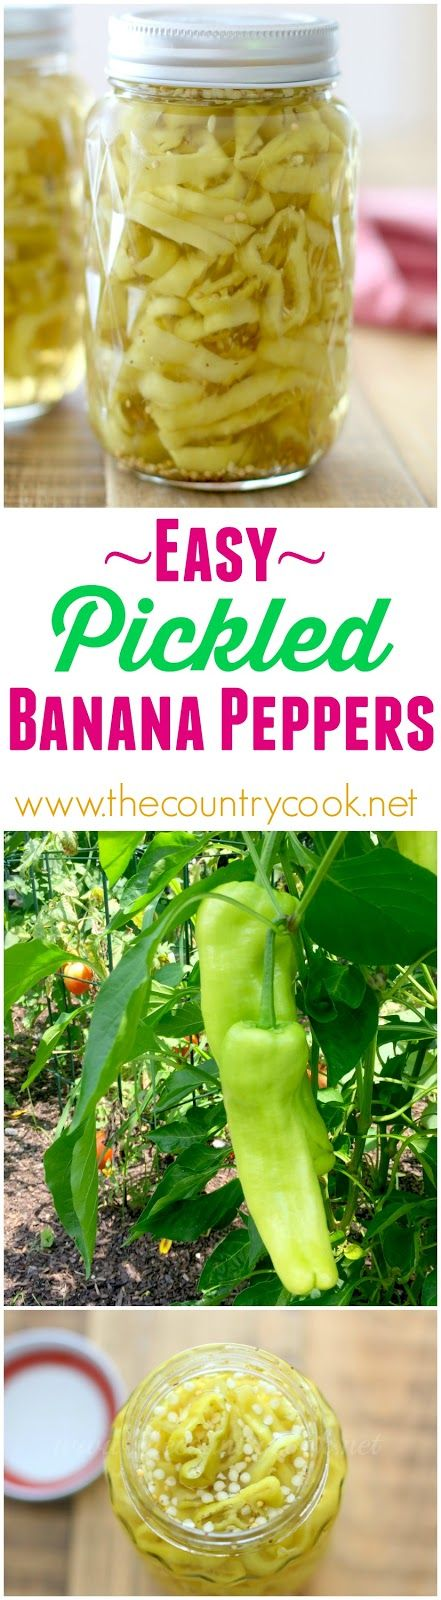 Easy pickled banana peppers recipe the country cook - How to can banana peppers from your garden ...